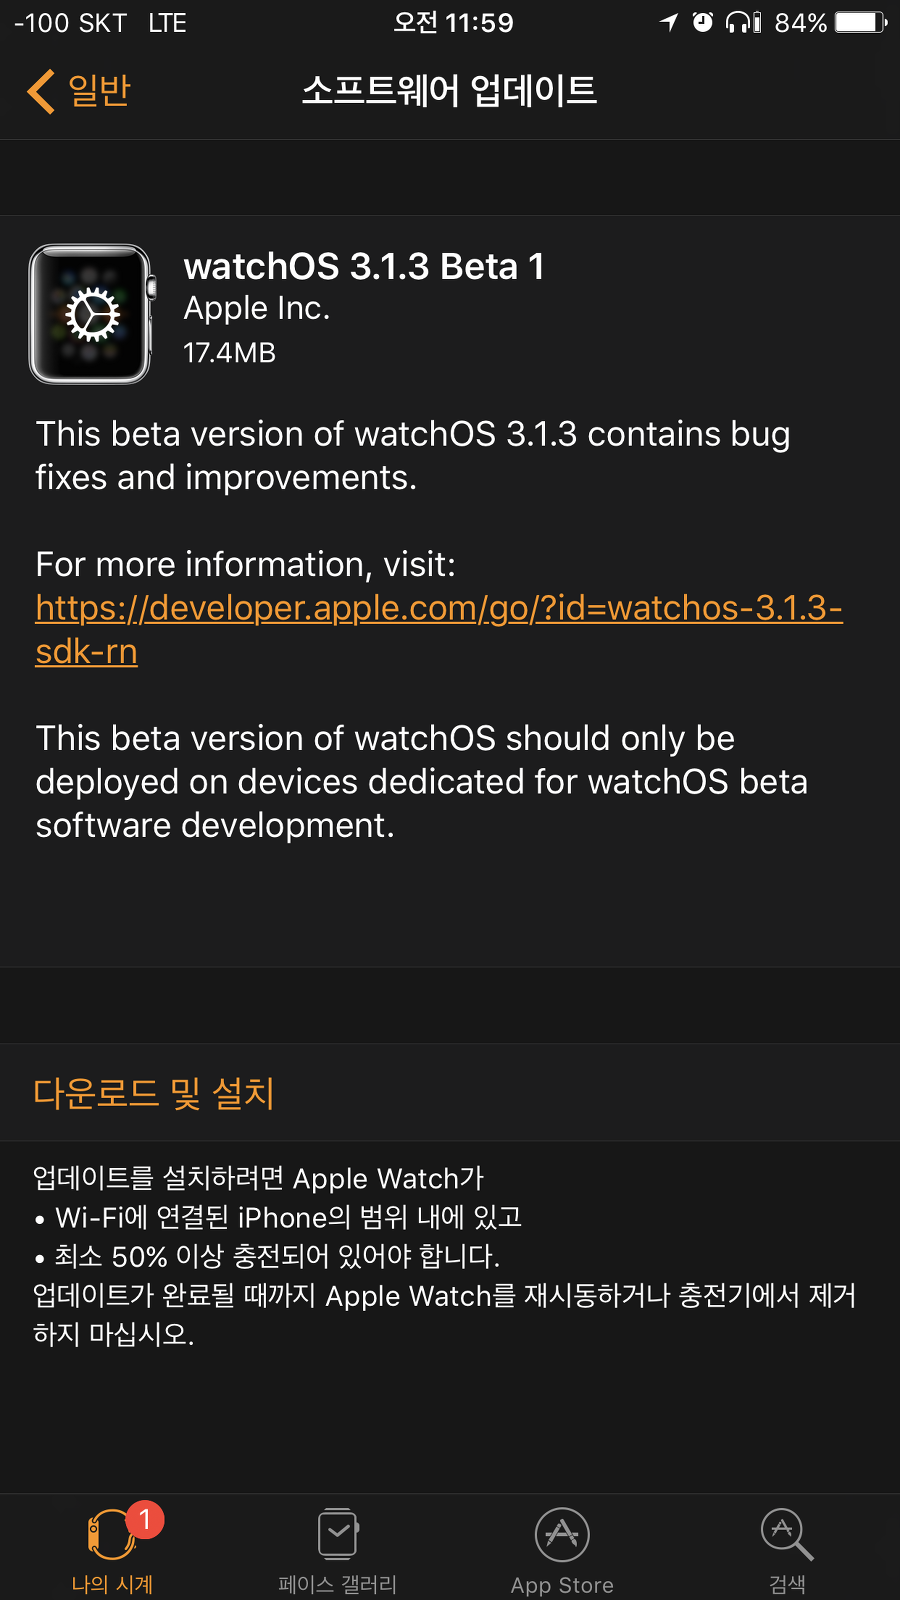 watchOS3.1.3 beta1